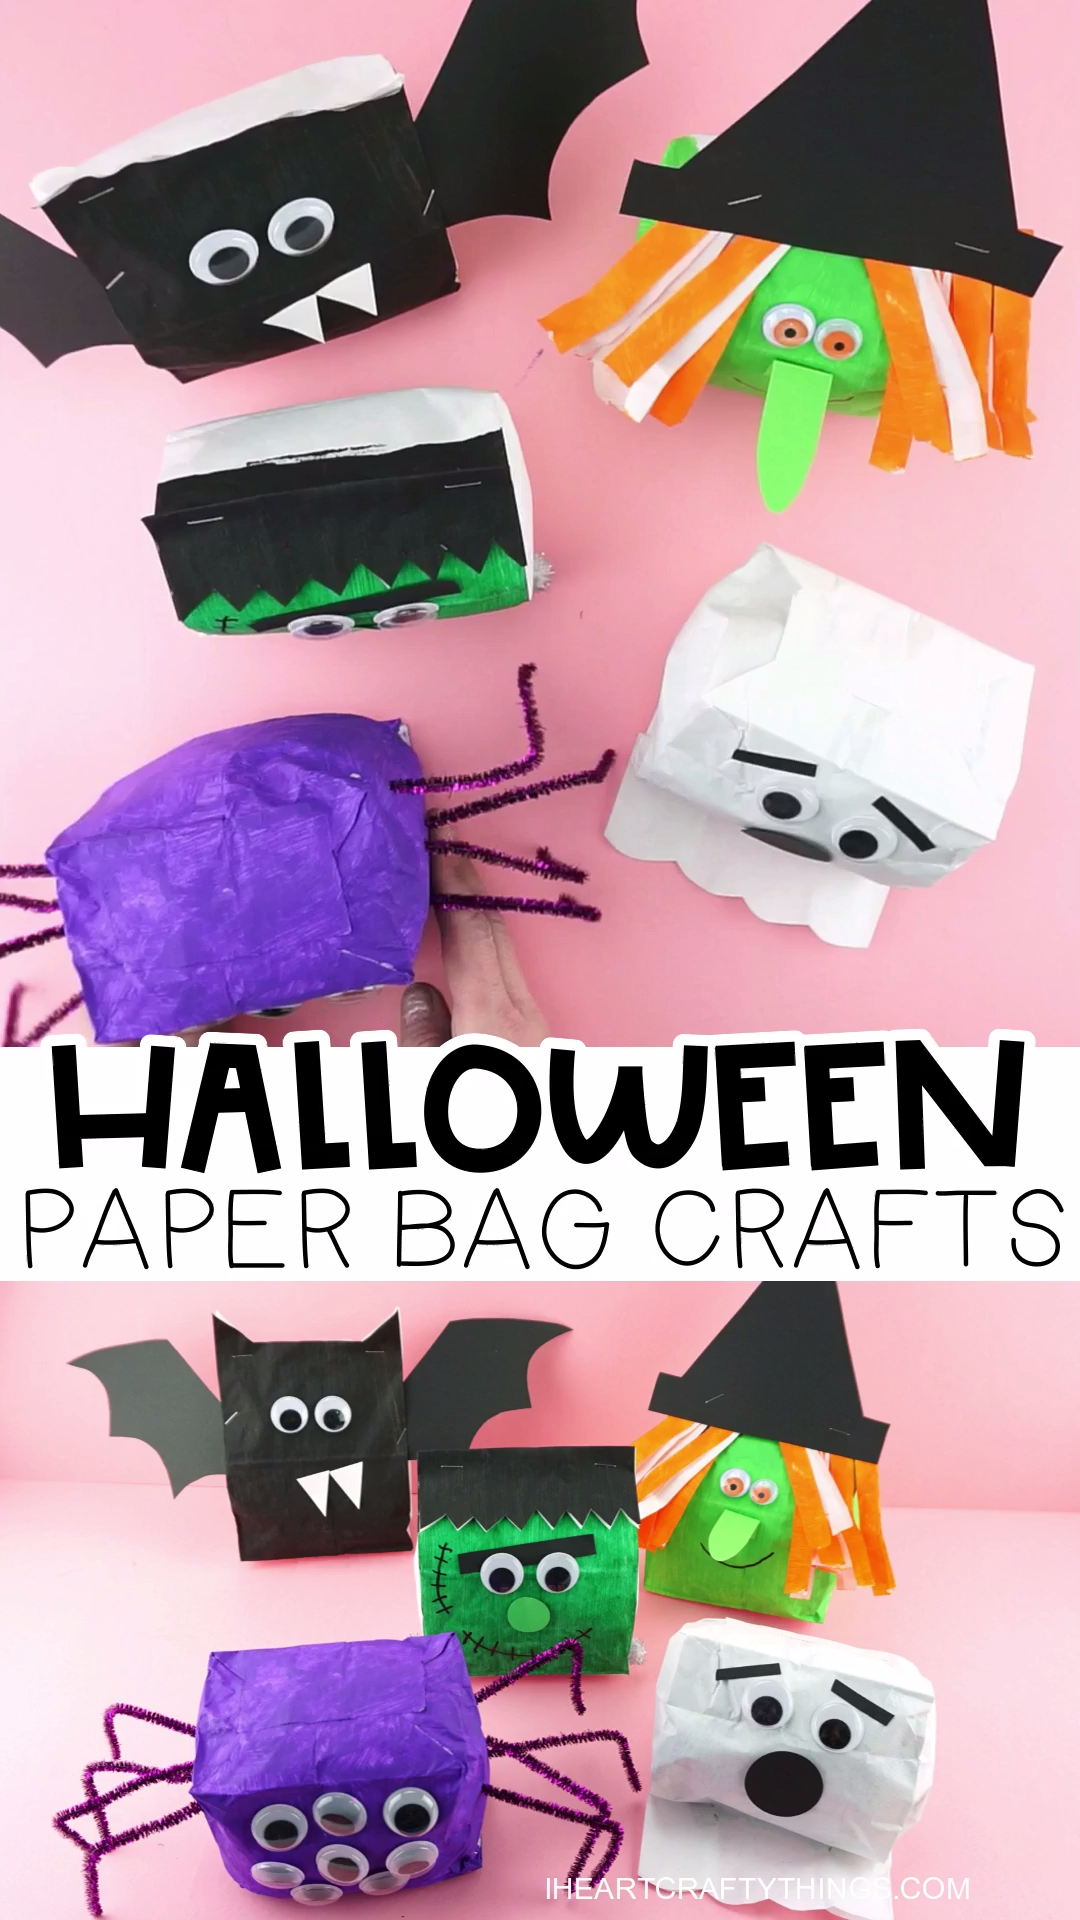 Paper Bag Halloween Crafts for Kids #halloweencraftsforkids